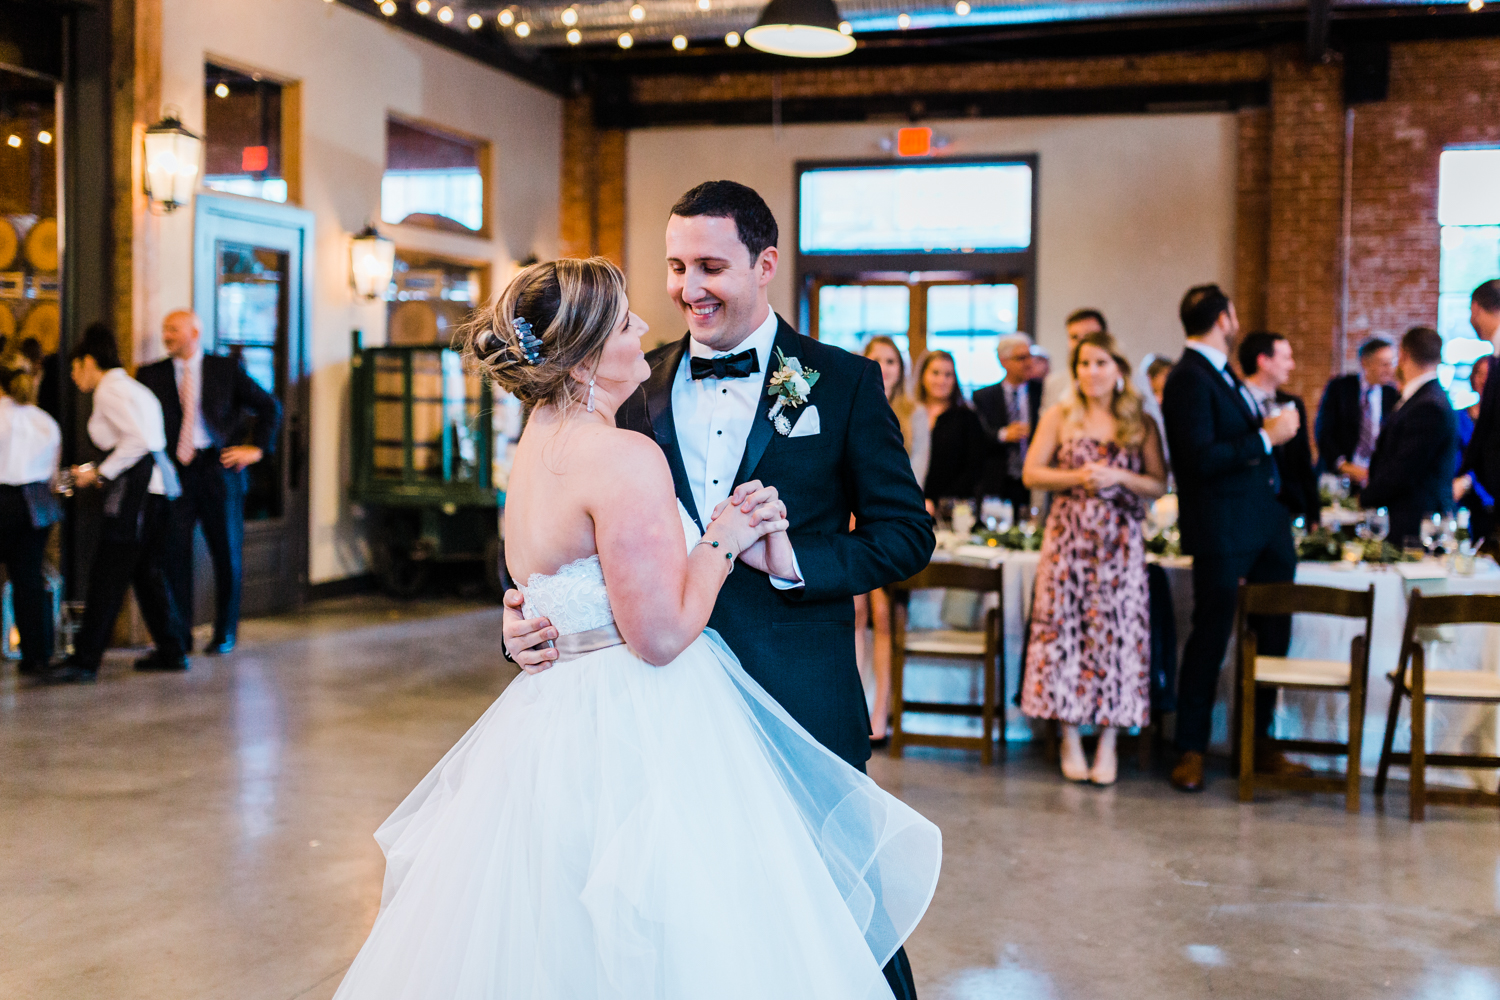 Bride and groom smiling at each other during first dance - top photographer in MD